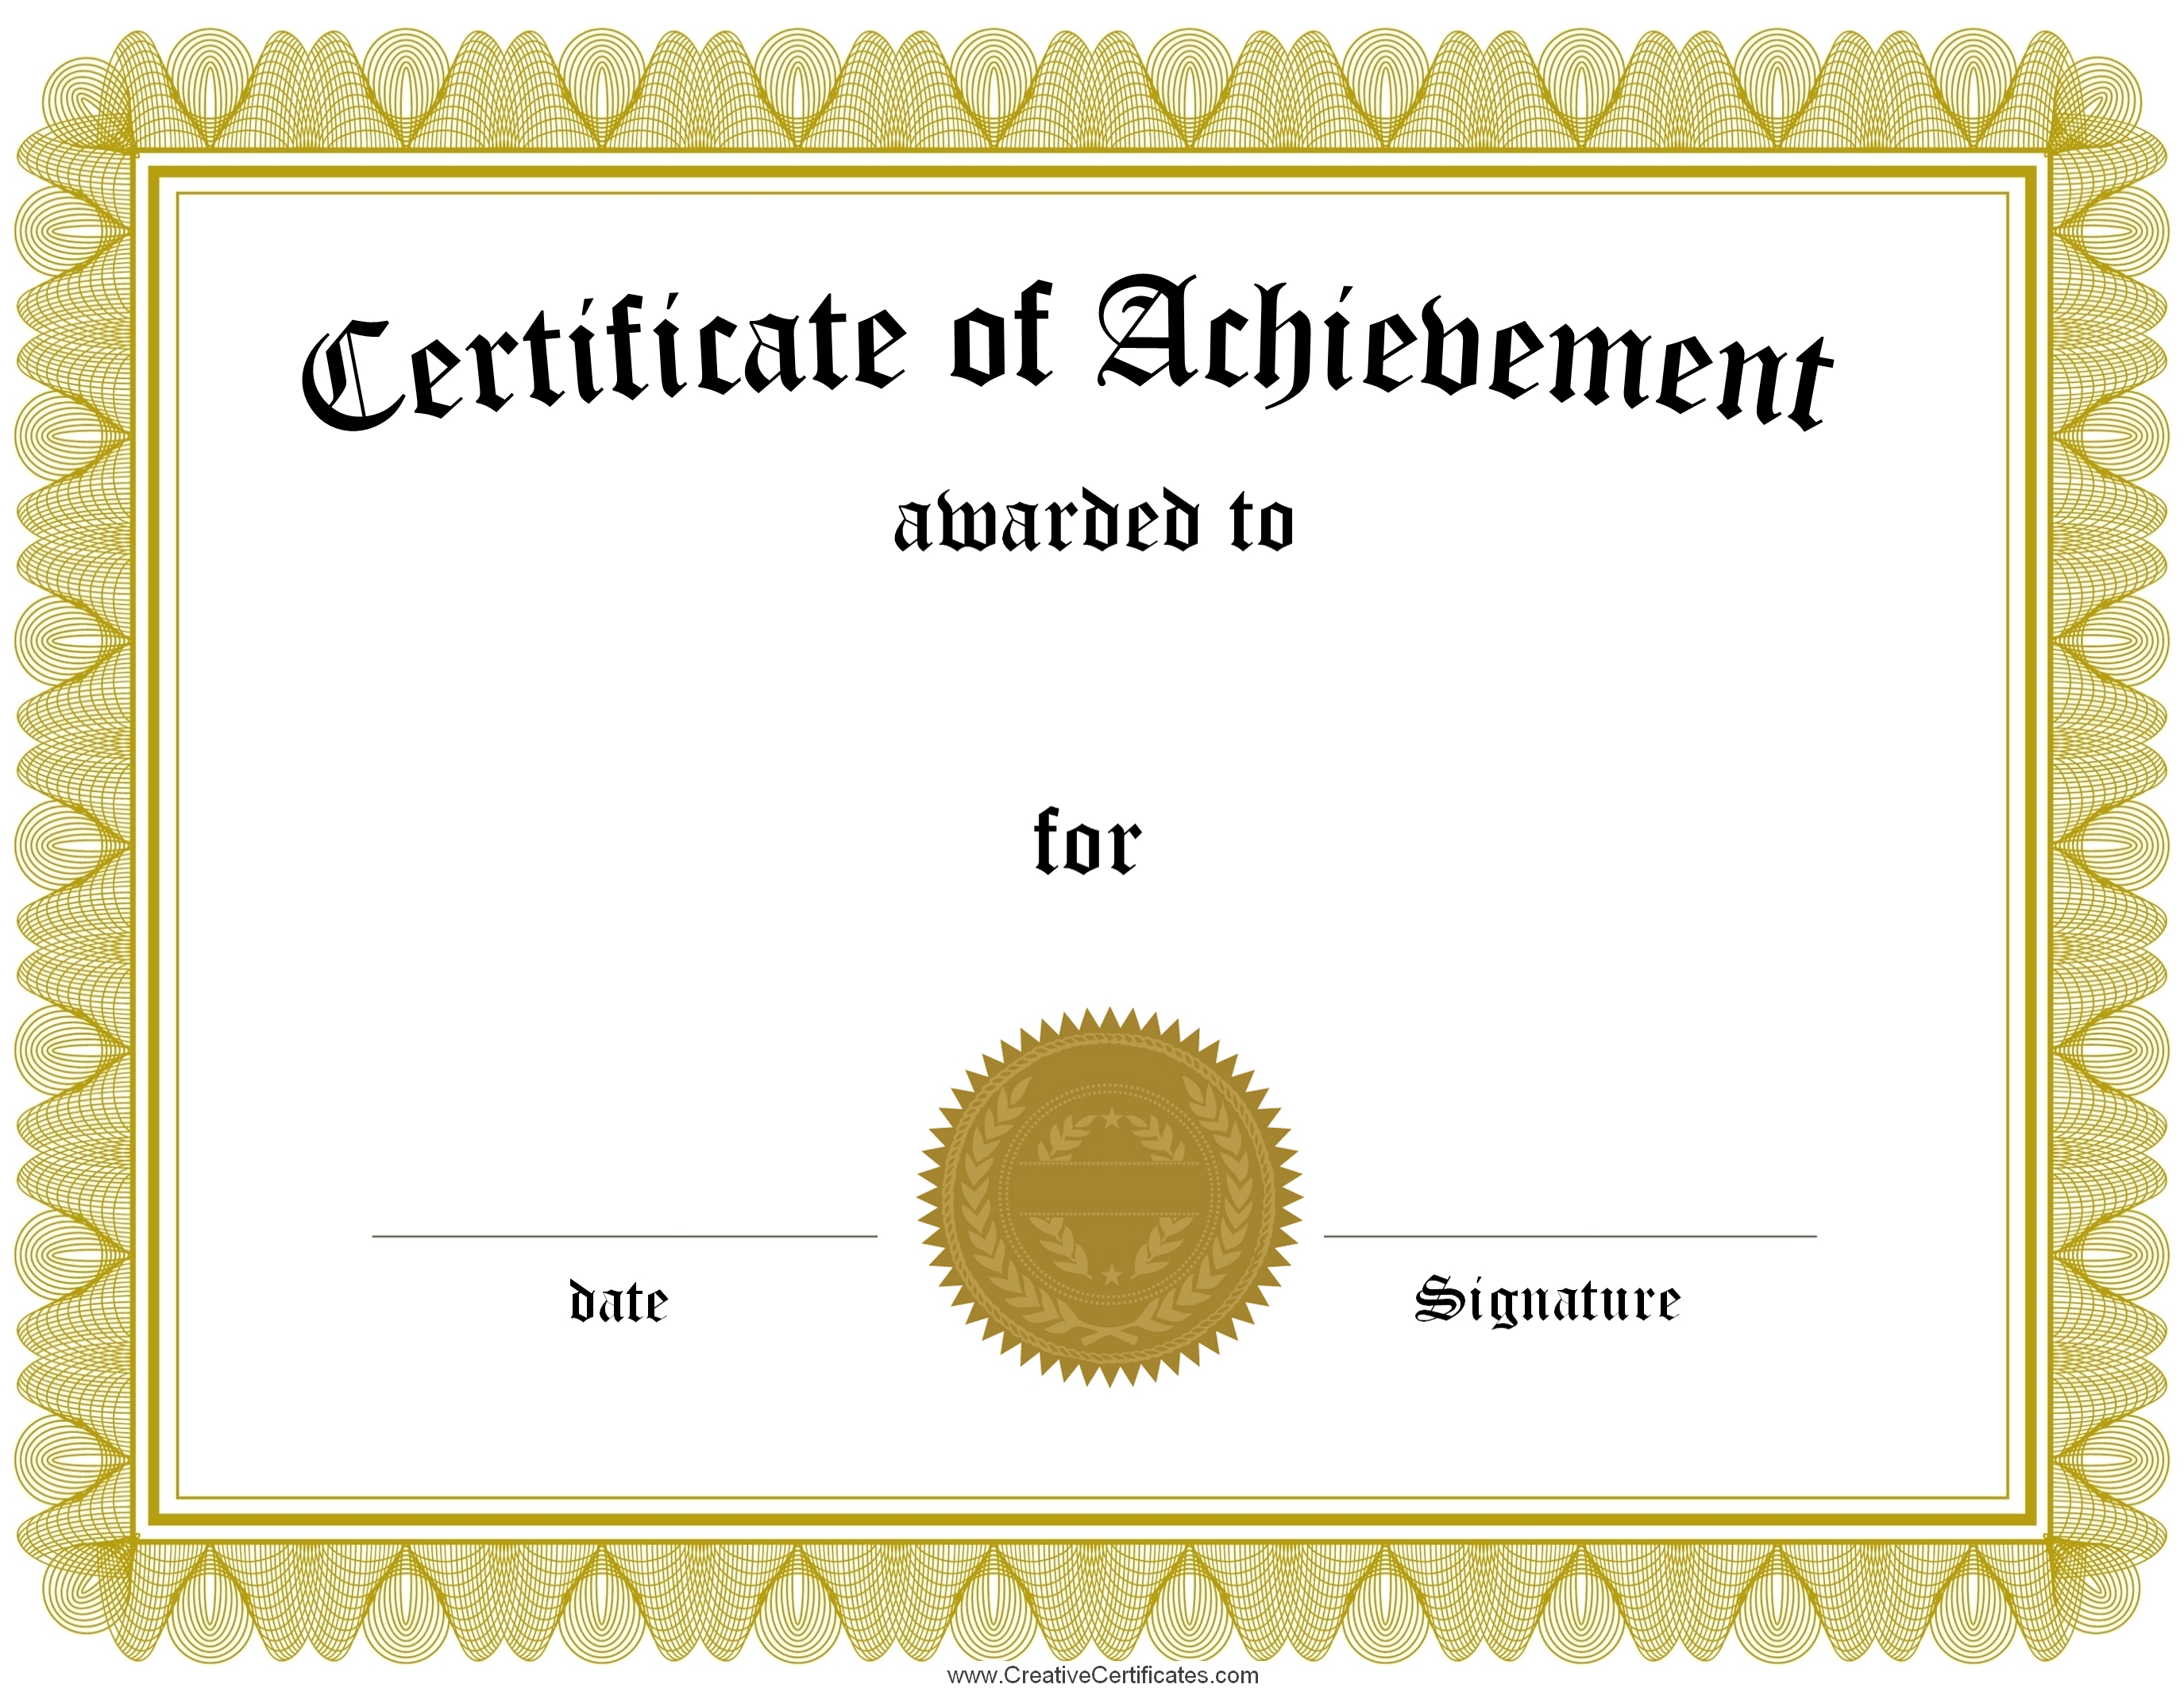 achievement formal Award Certificate printable blank